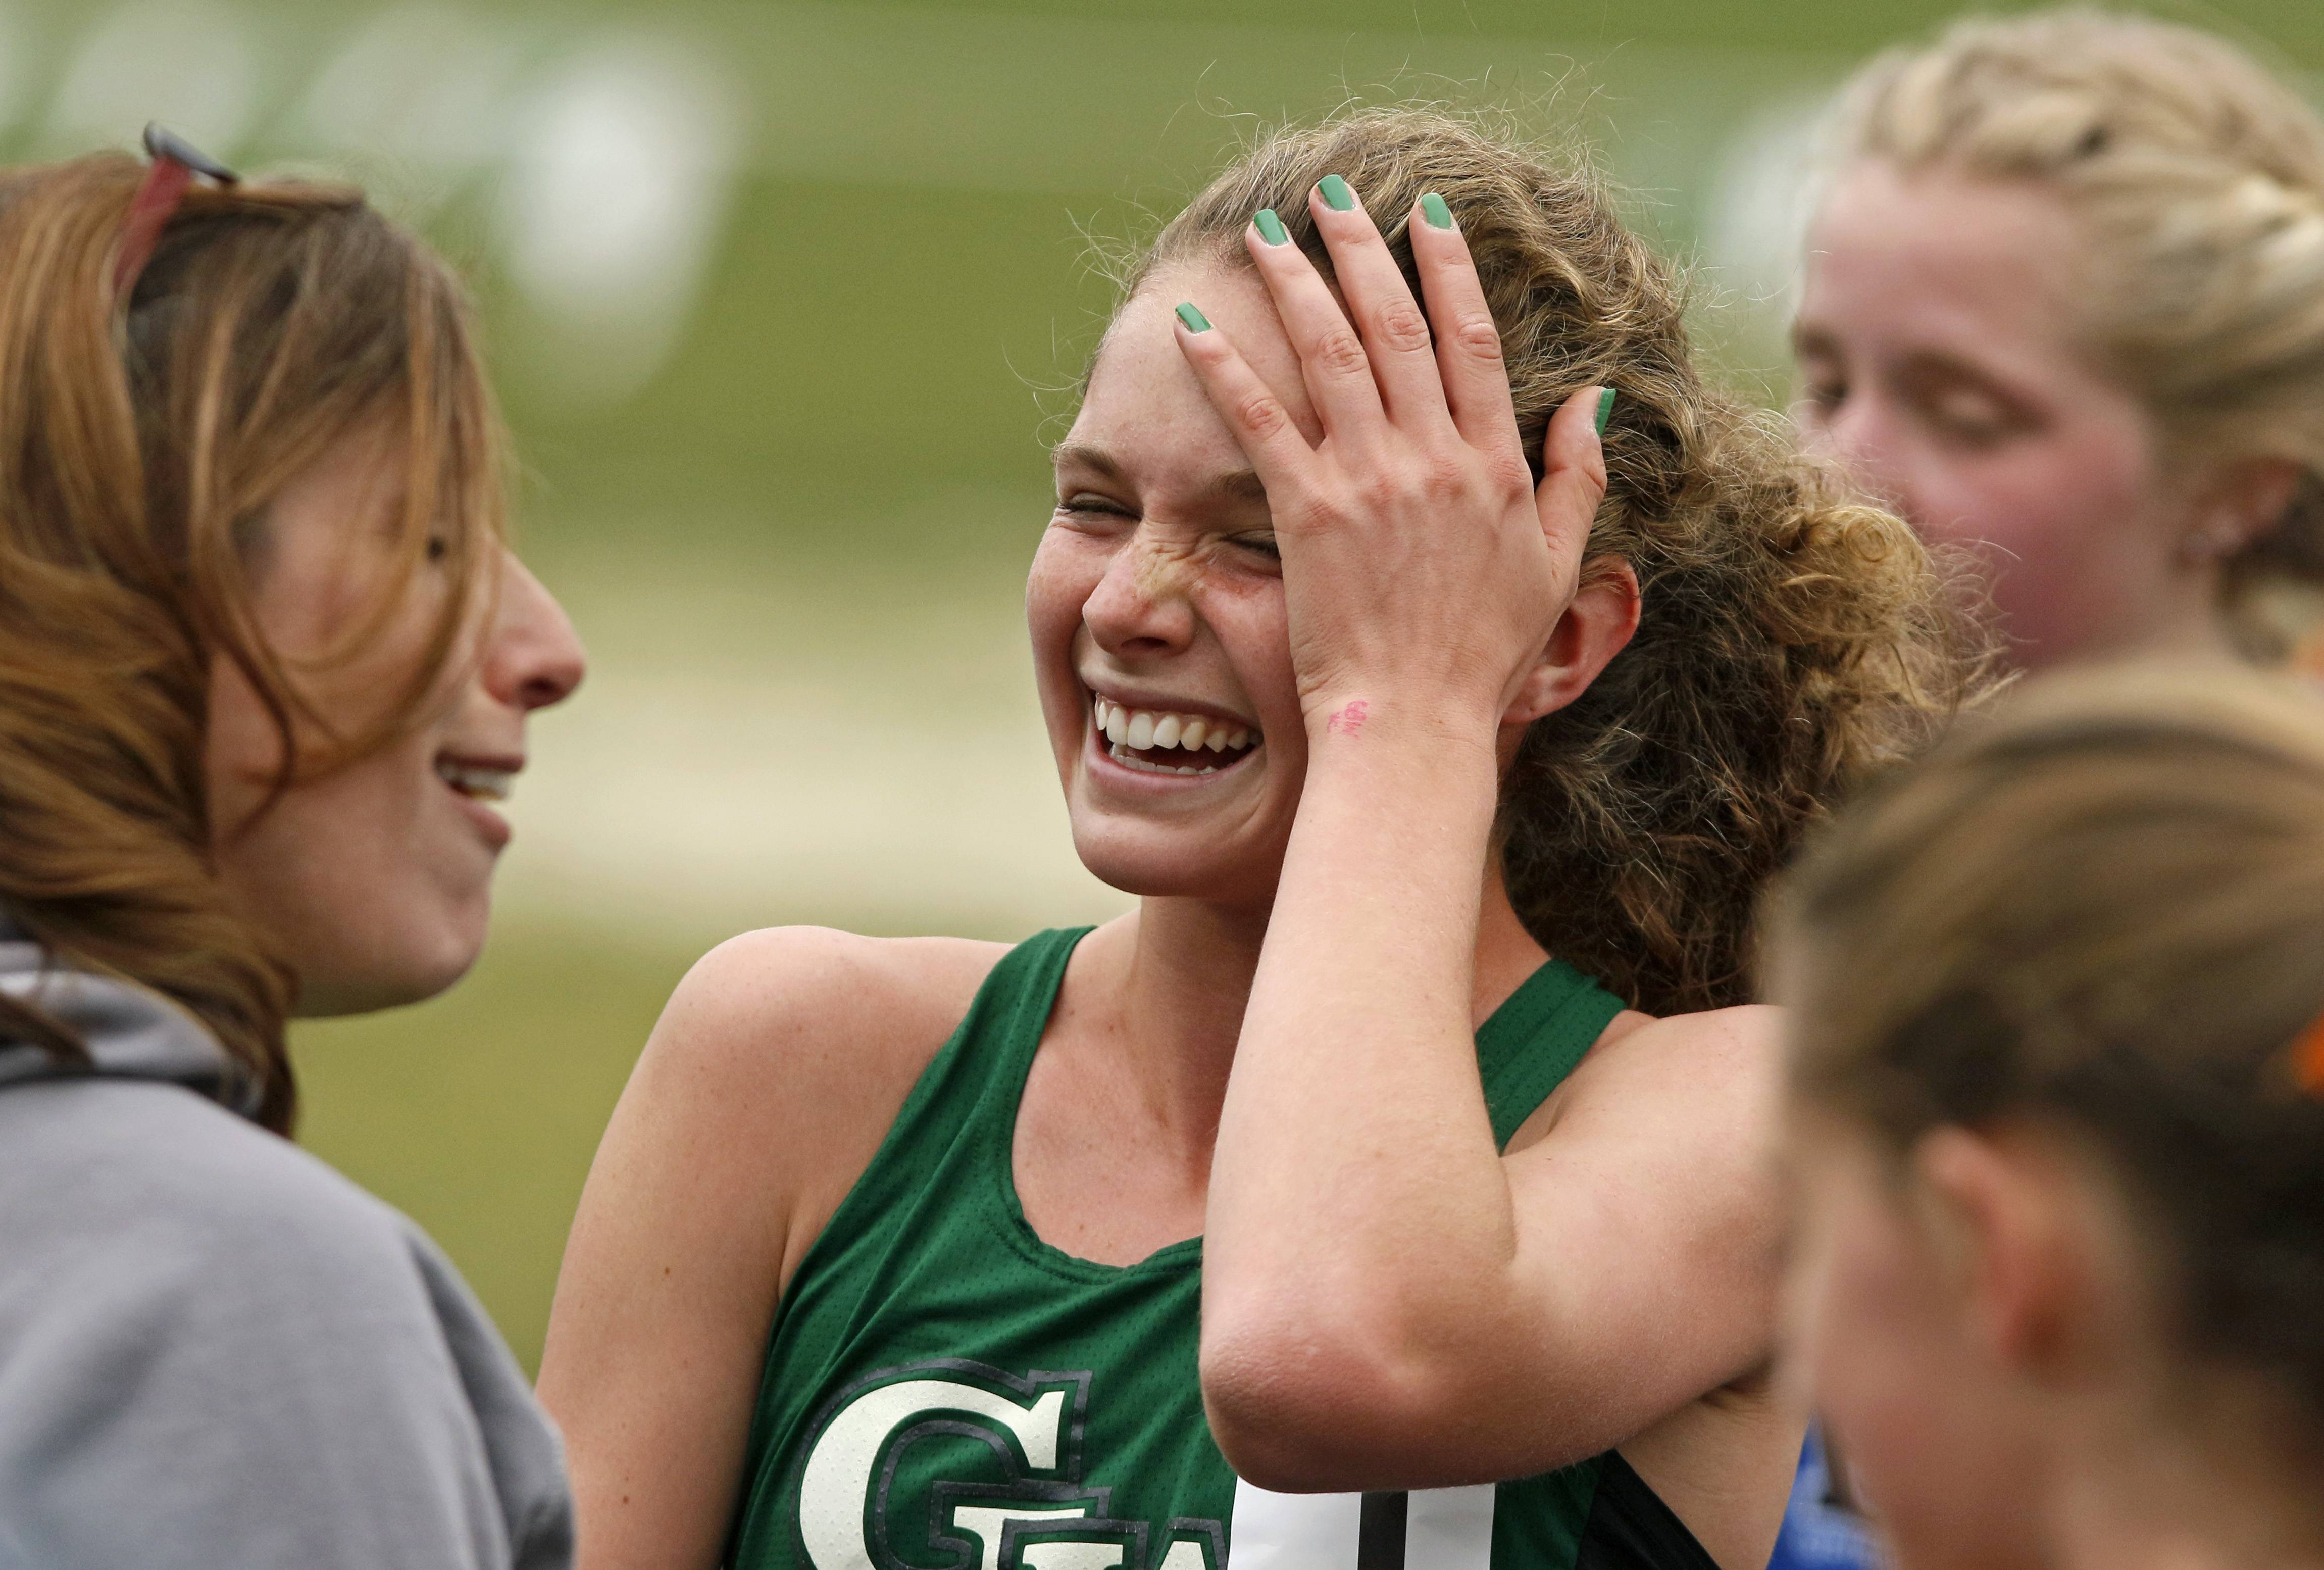 Glenbard West's Katelynne Hart reacts to her 3200-meter run time during the Glenbard West Girls Track Invite. The IHSA considers only all-time records set at the state meet, but Hart ran what is believed to be the second-fastest time in U.S. history Saturday morning with her time of 9 minutes, 52.02 seconds. California native Kim Mortensen set the American high school record in 1996 with her 9:48.59.